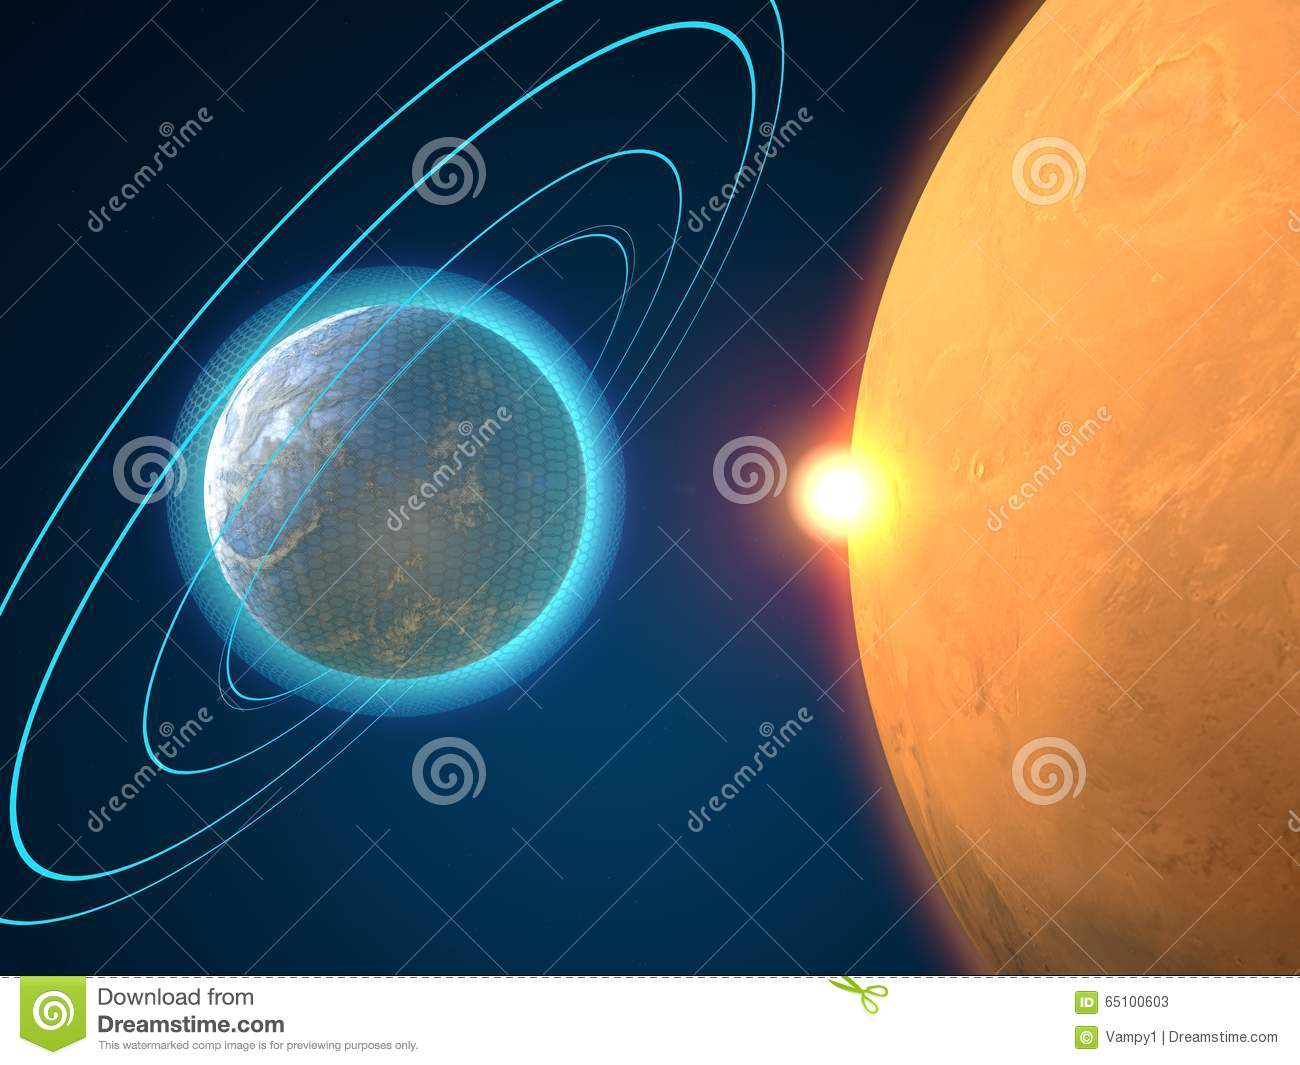 Planets in another galaxy space science fiction stock illustration image 65100603 - Galaxy and planets ...